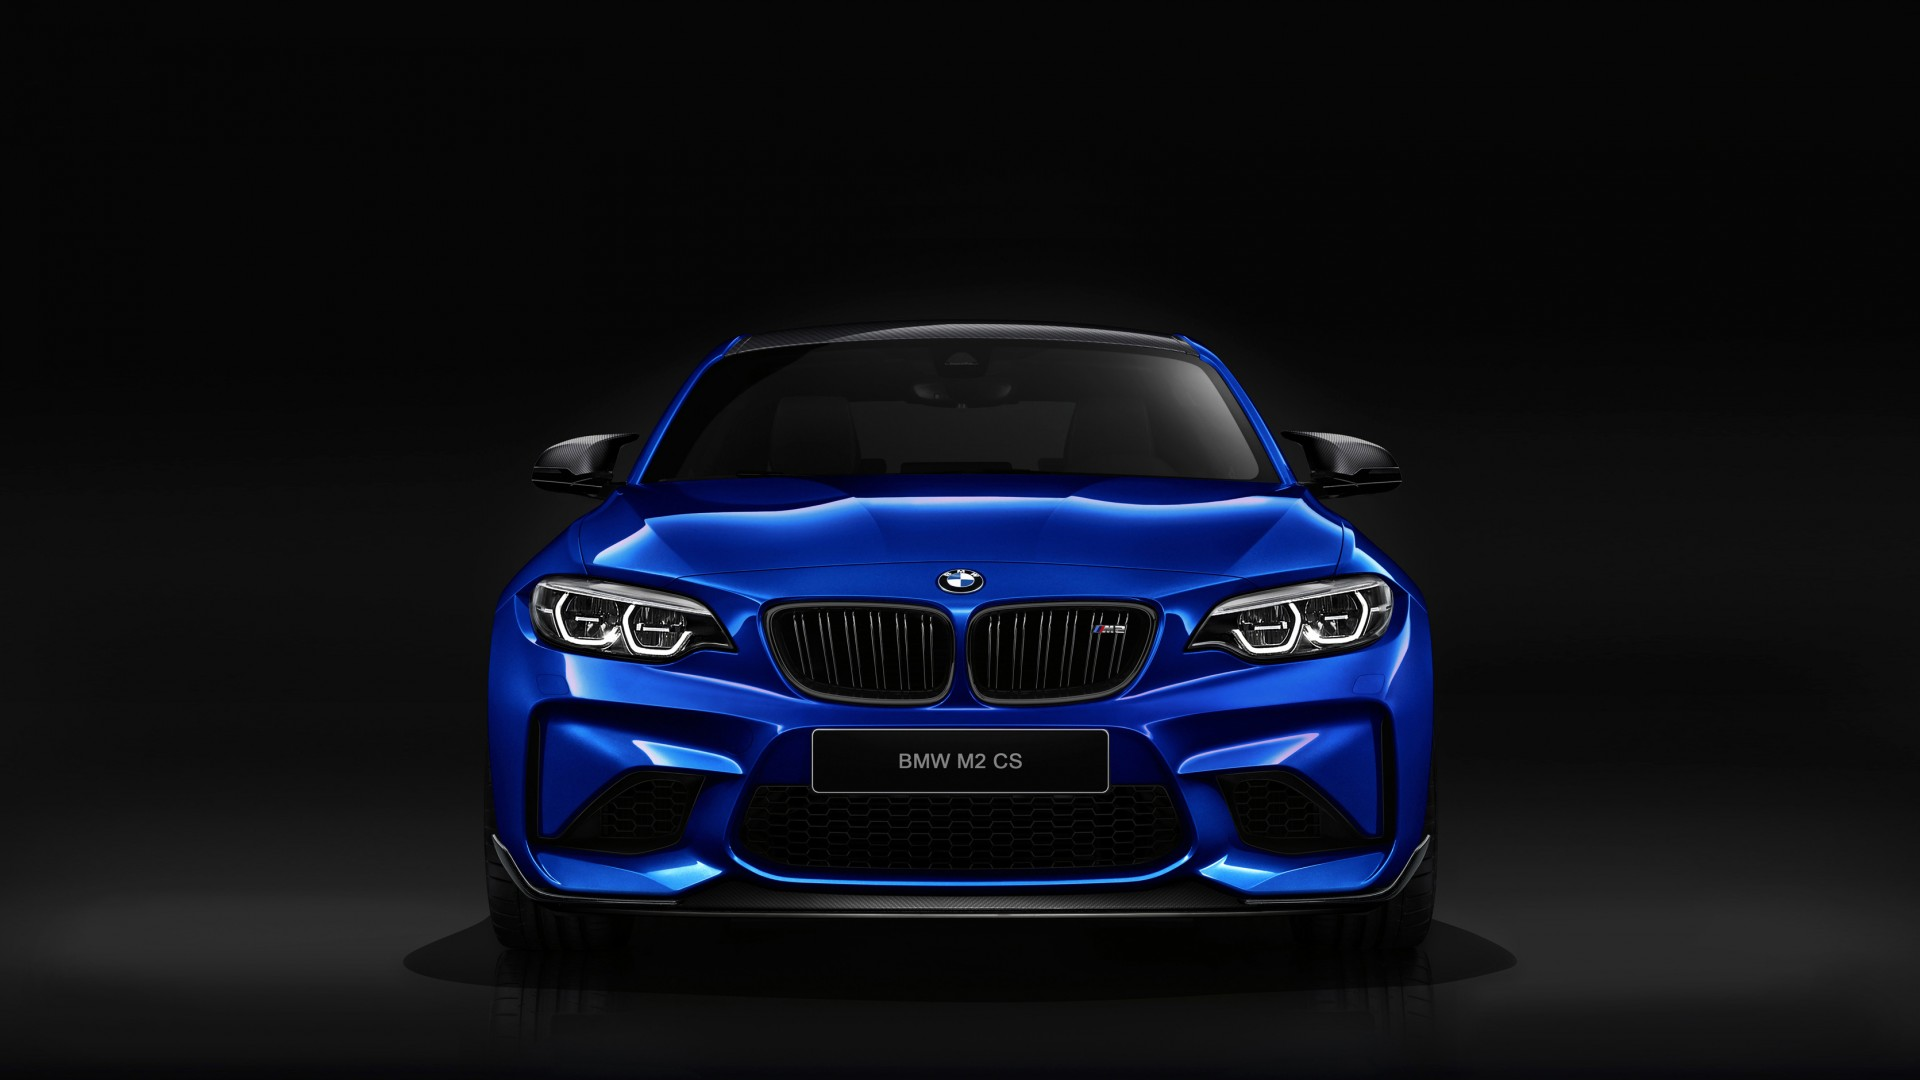 Bmw Iphone X Wallpaper 2017 Bmw M2 Cs Wallpaper Hd Car Wallpapers Id 8079